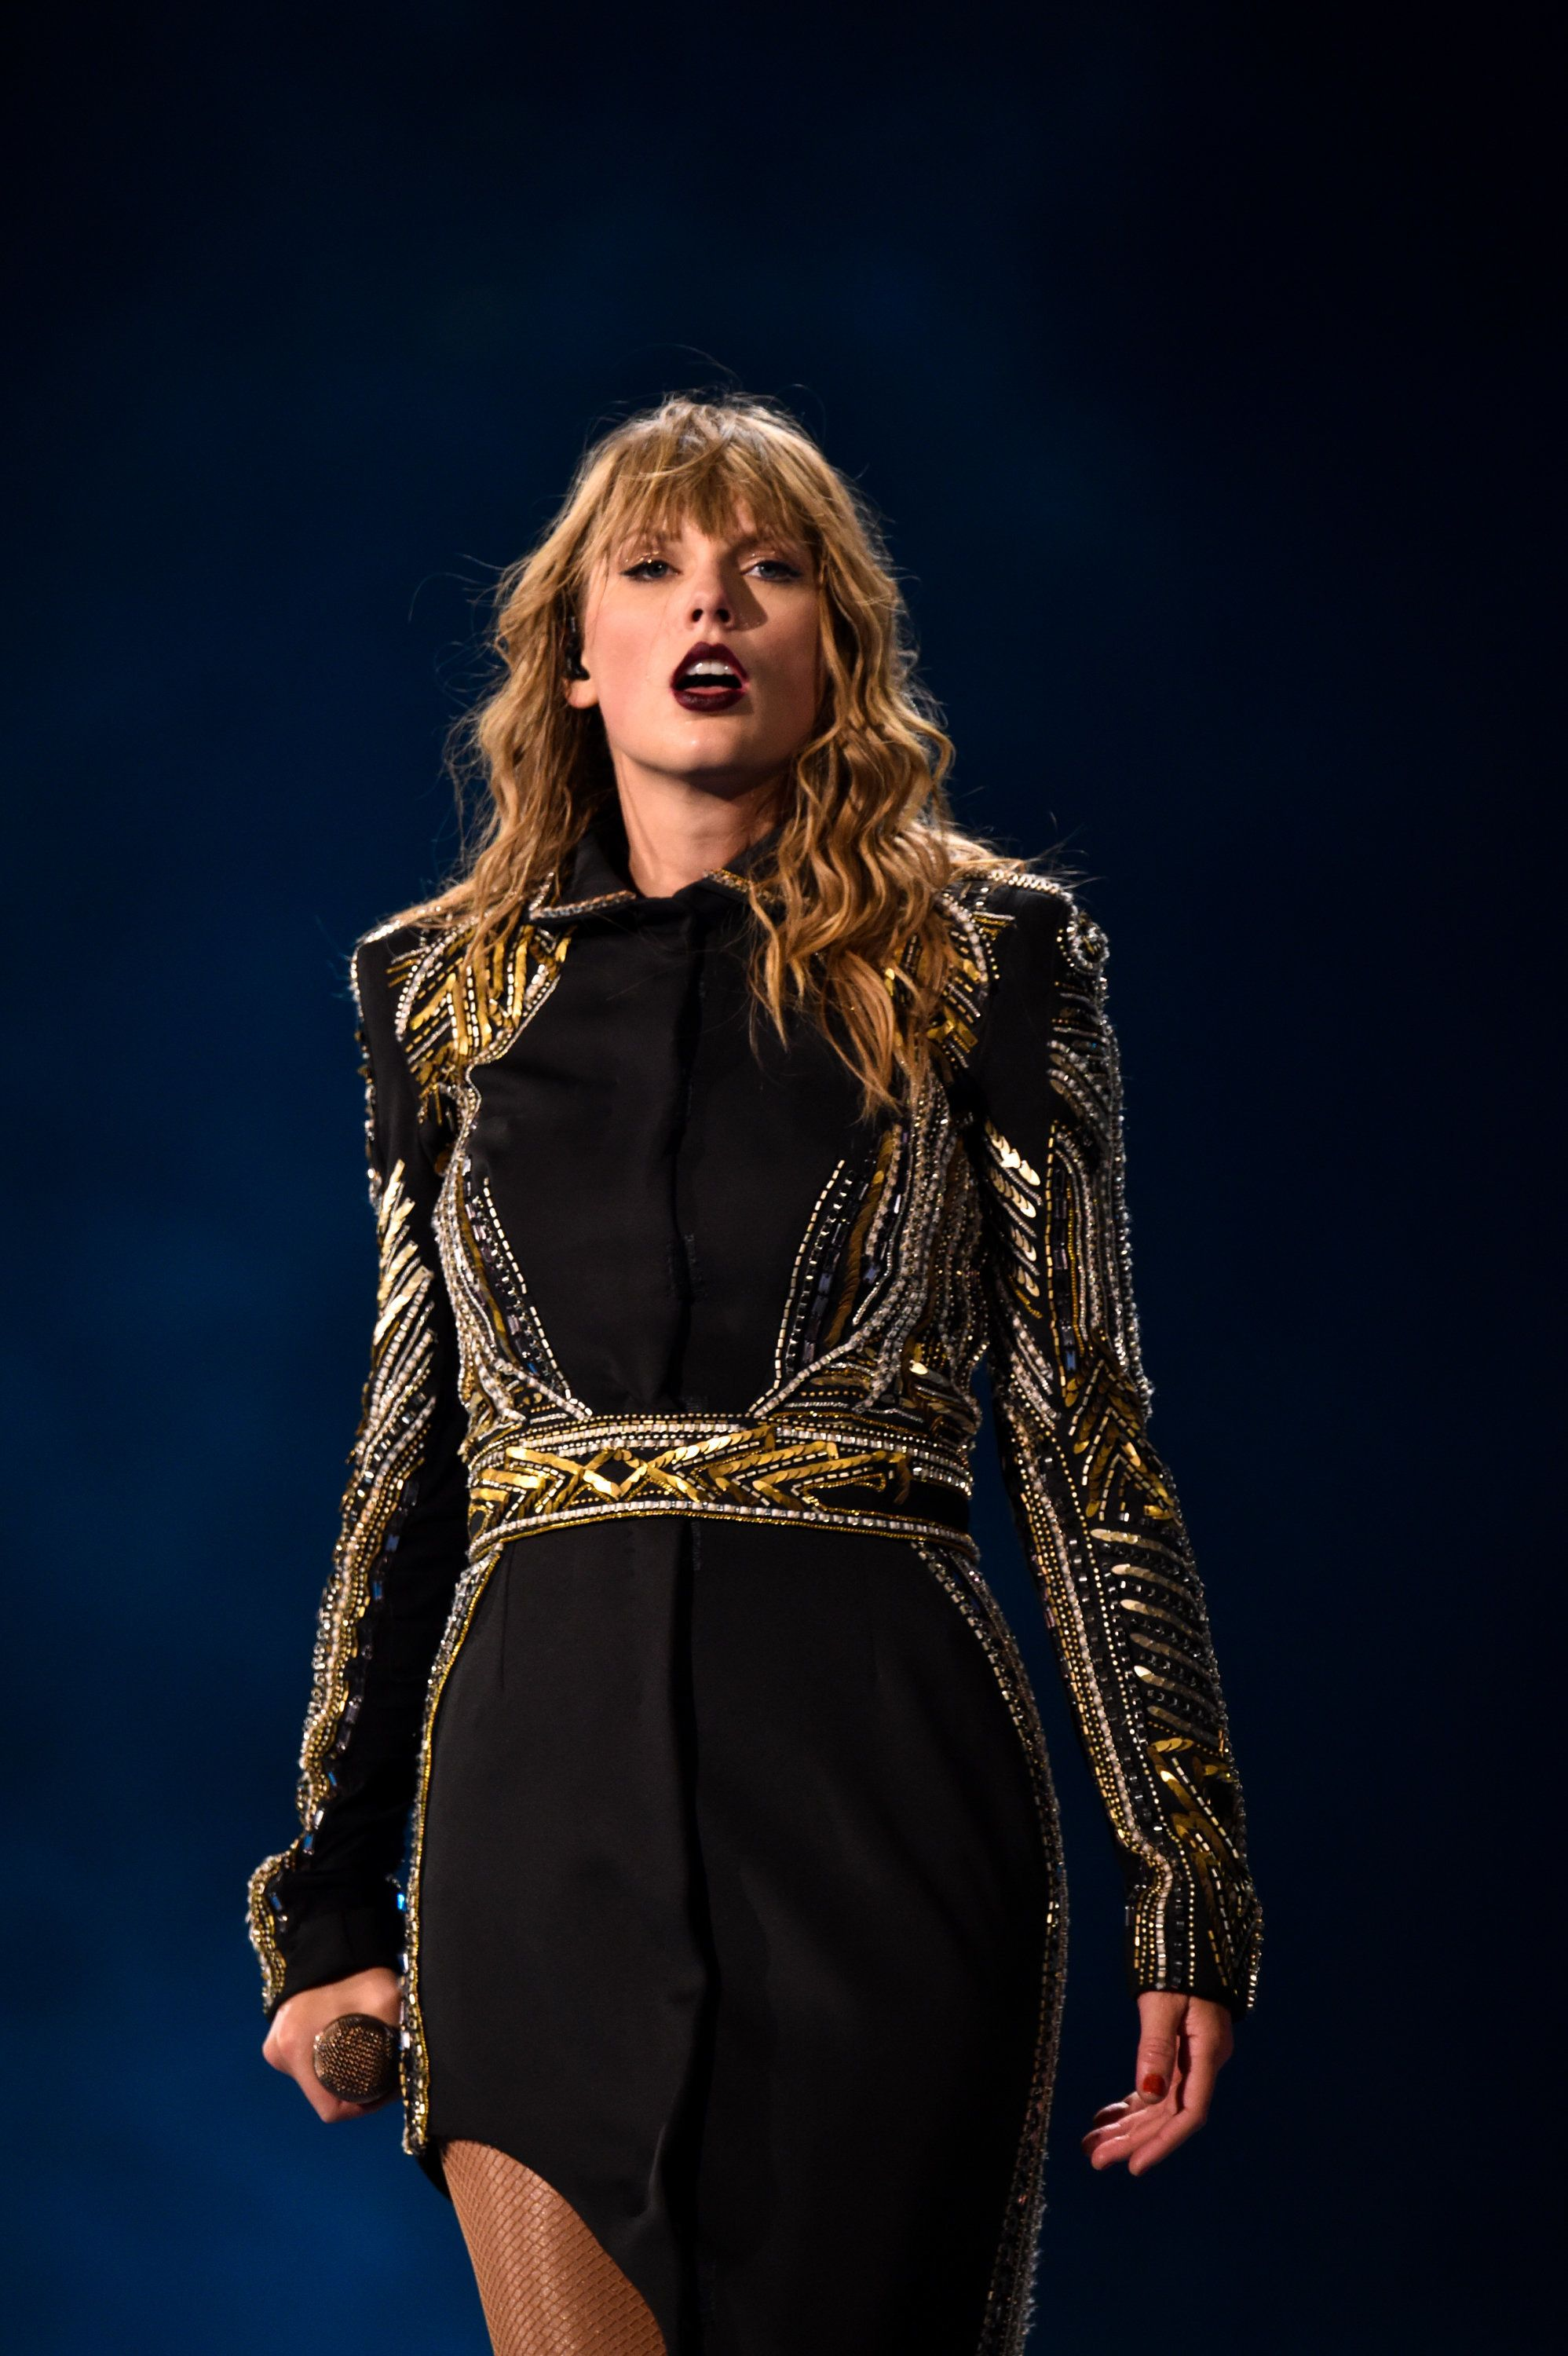 ATLANTA, GA - AUGUST 11:  Taylor Swift performs onstage during the Taylor Swift reputation Stadium Tour at Mercedes-Benz Stadium on August 11, 2018 in Atlanta, Georgia.  (Photo by John Shearer/TAS18/Getty Images for TAS)